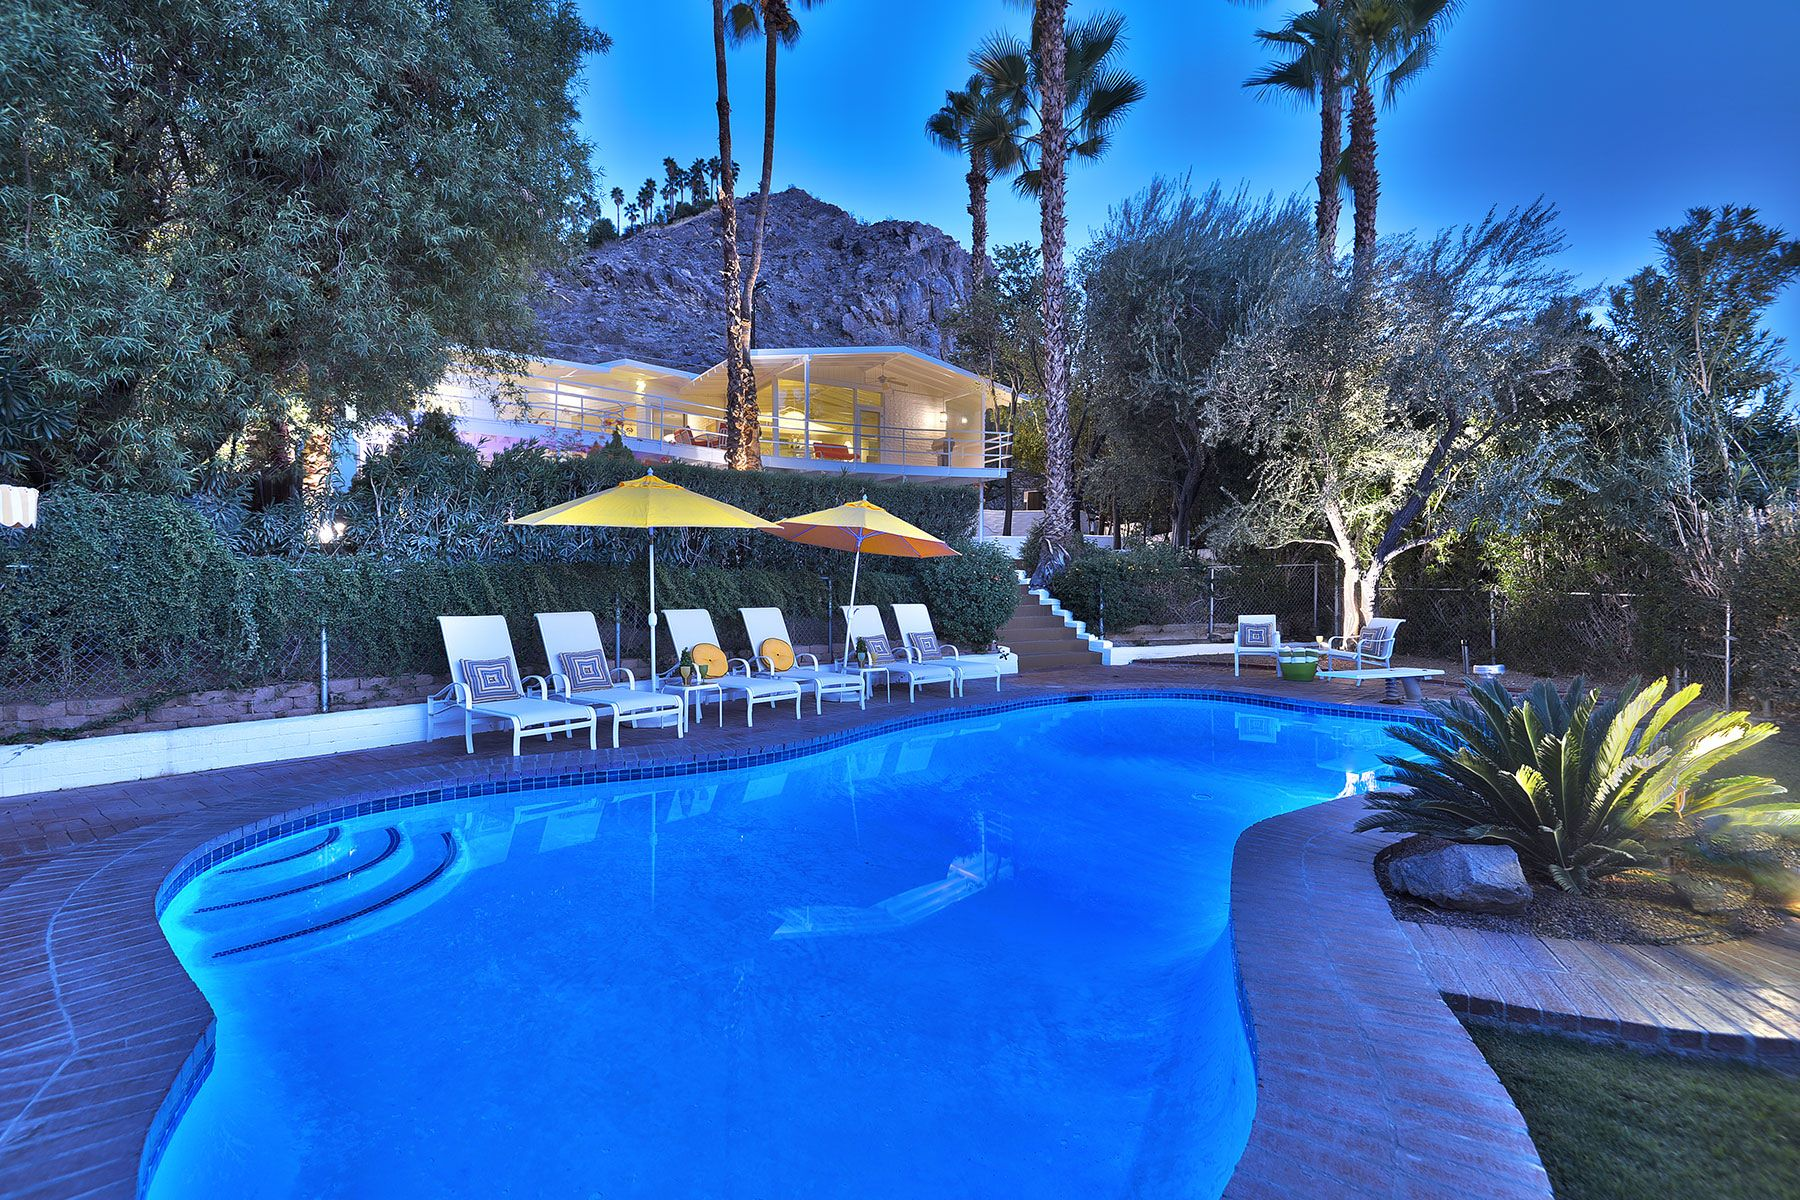 Casa Unifamiliar por un Venta en Howard Hughes Estate 2195 Rim Road Palm Springs, California 92264 Estados Unidos